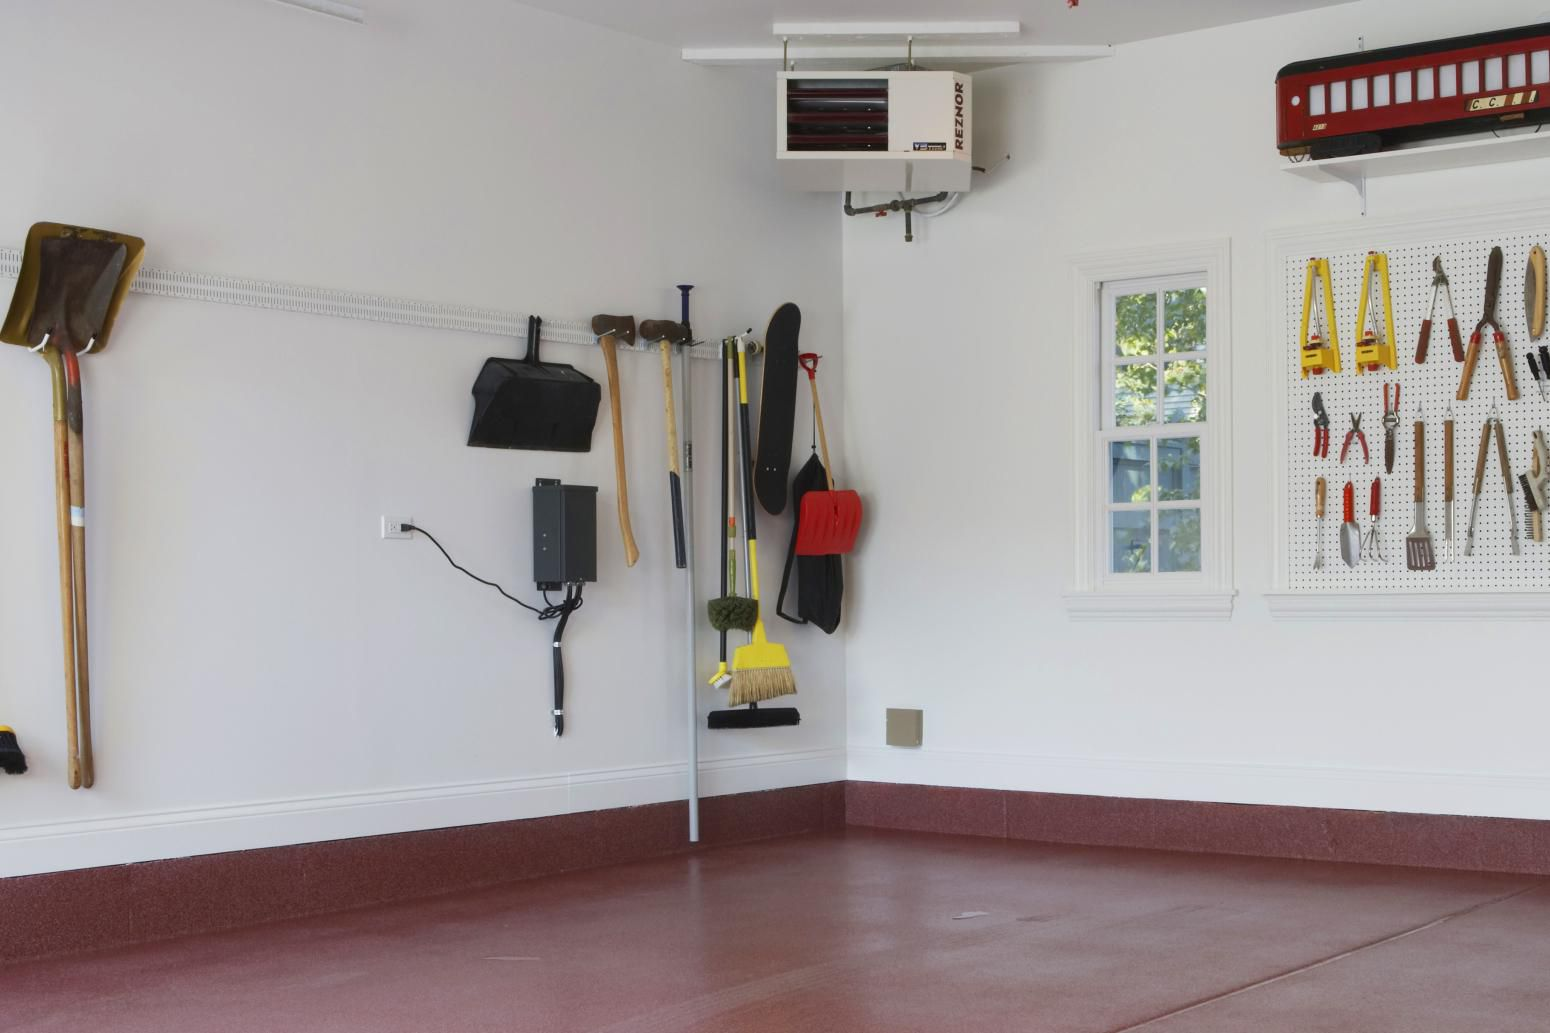 best options for heating a garage